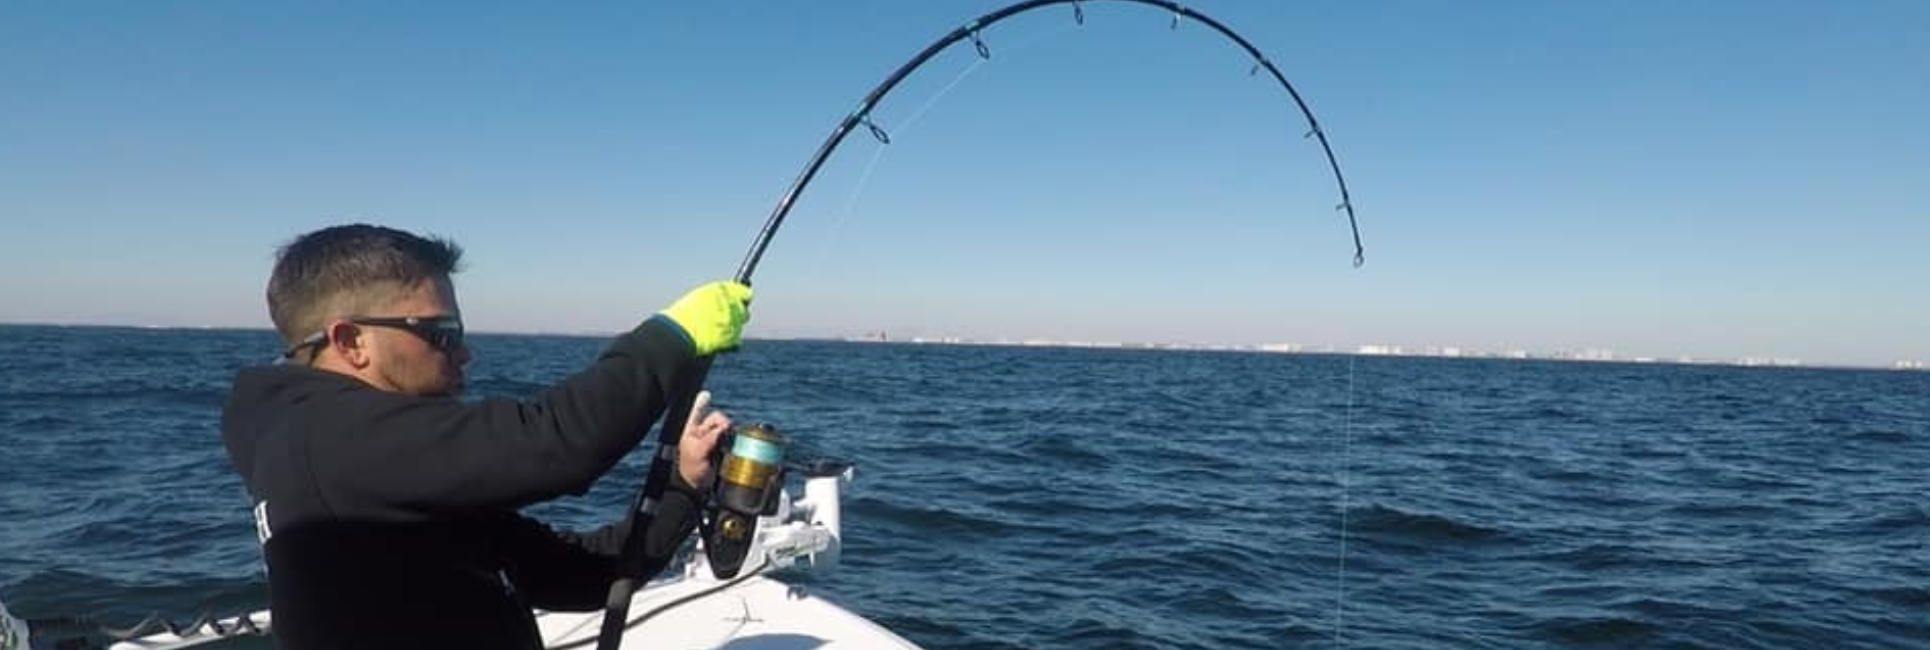 Florida fishing guide reeling in fish with a bent rod while deep sea fishing